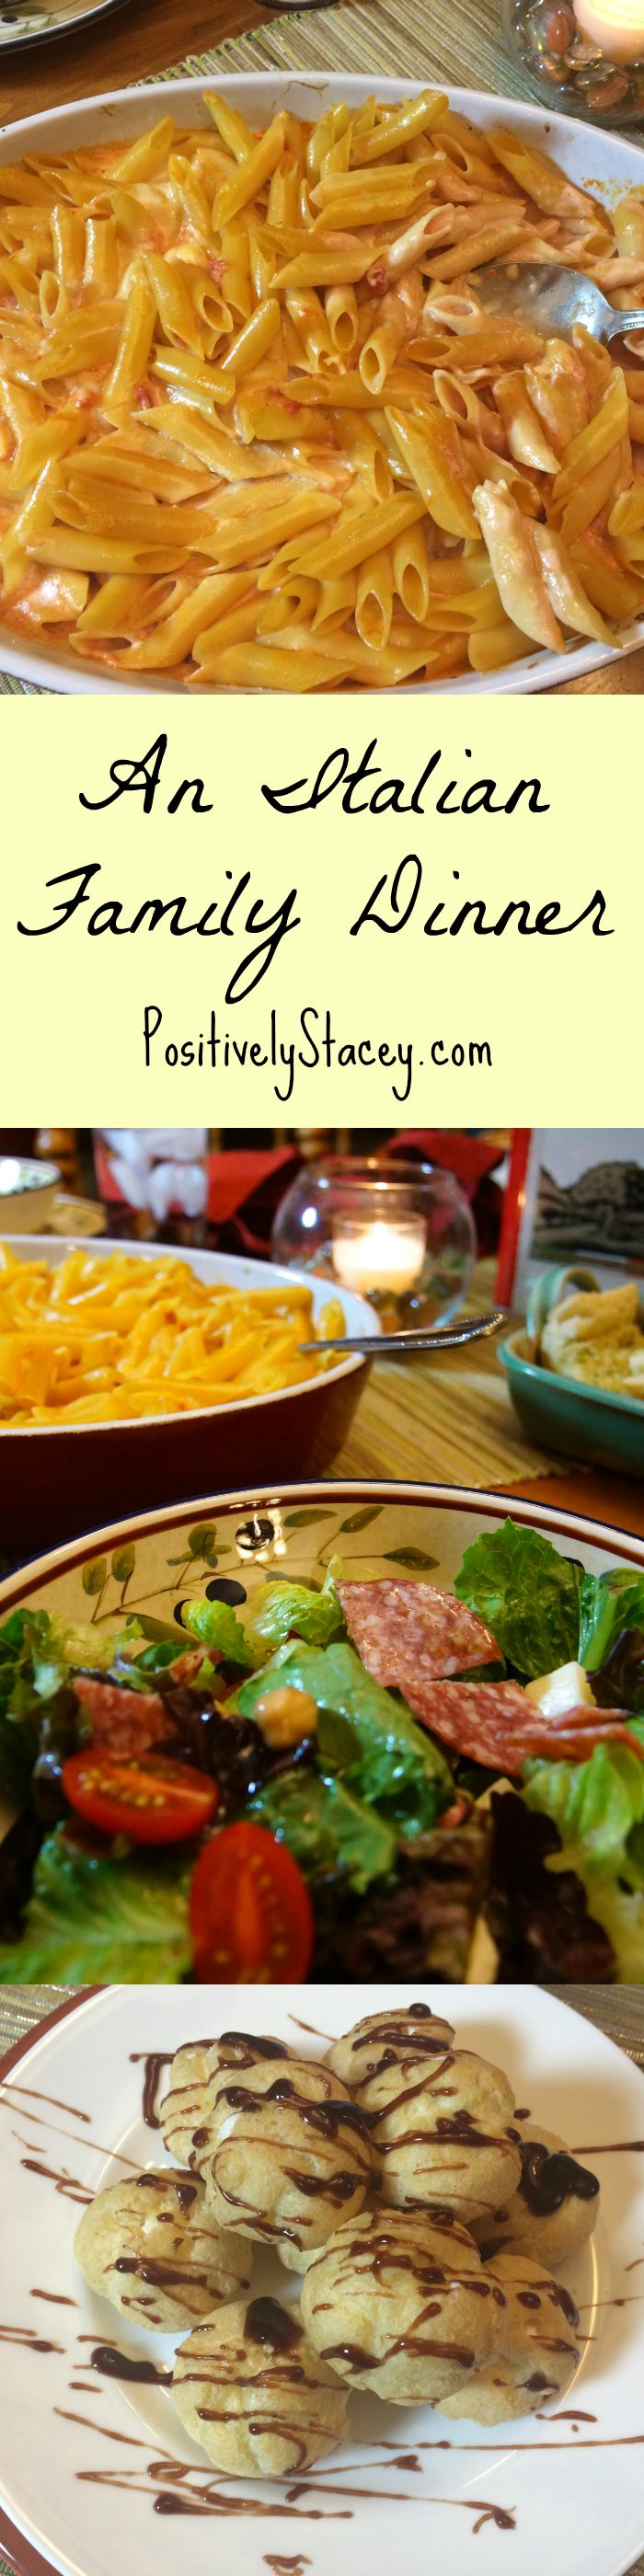 An absolutely delicious Italian Family Dinner Menu - perfect for family and company! Yum!